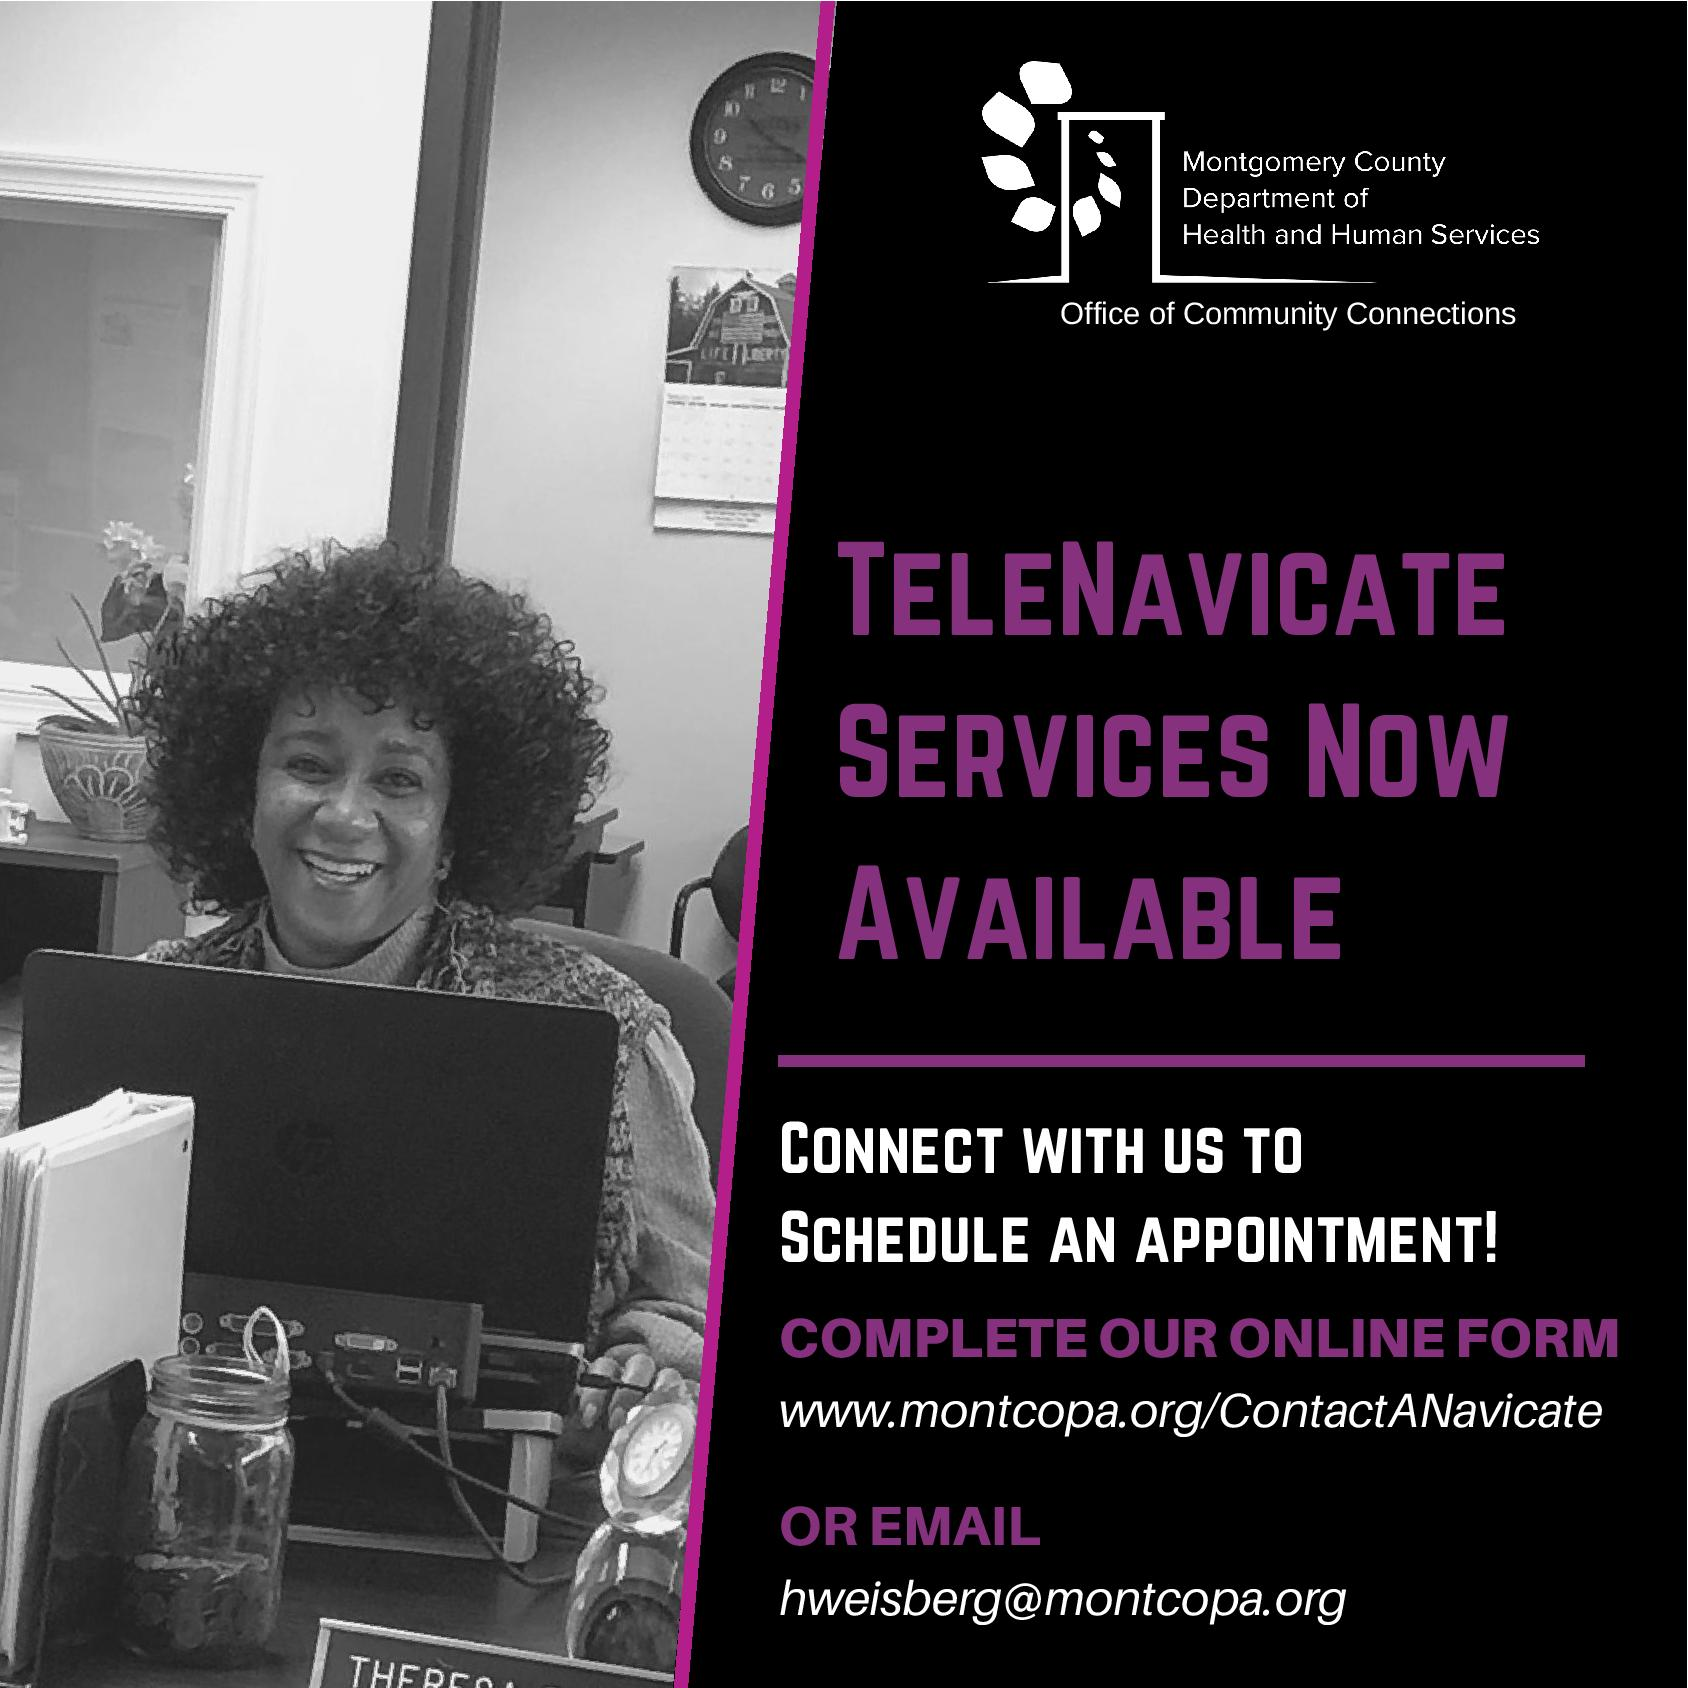 TeleNavicate Services Now Available